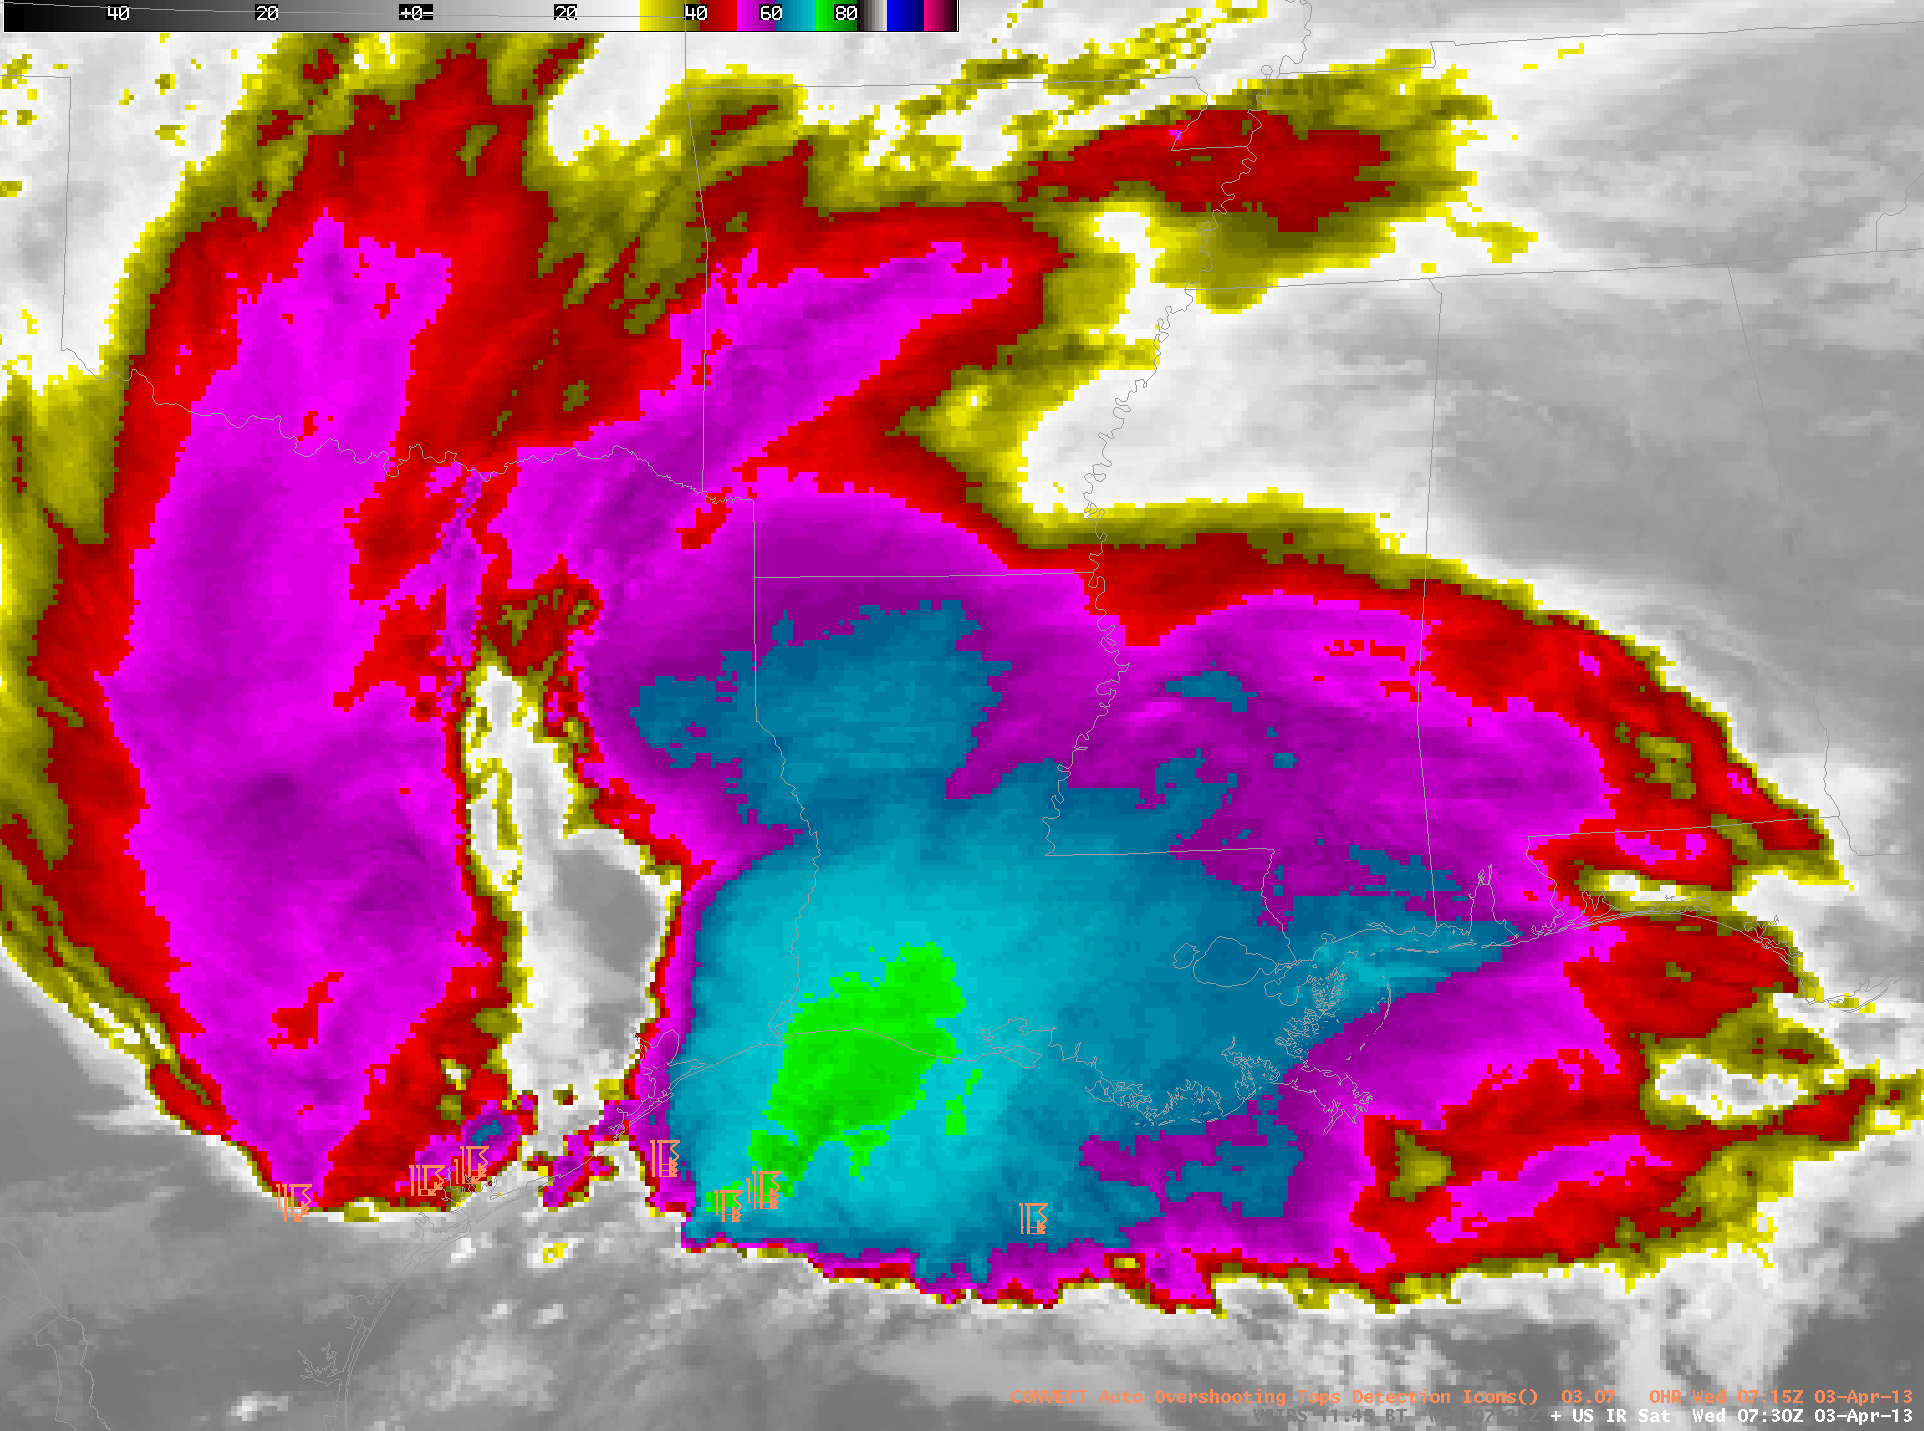 GOES-13 10.7 µm Imagery and auto-detected Overshooting Tops